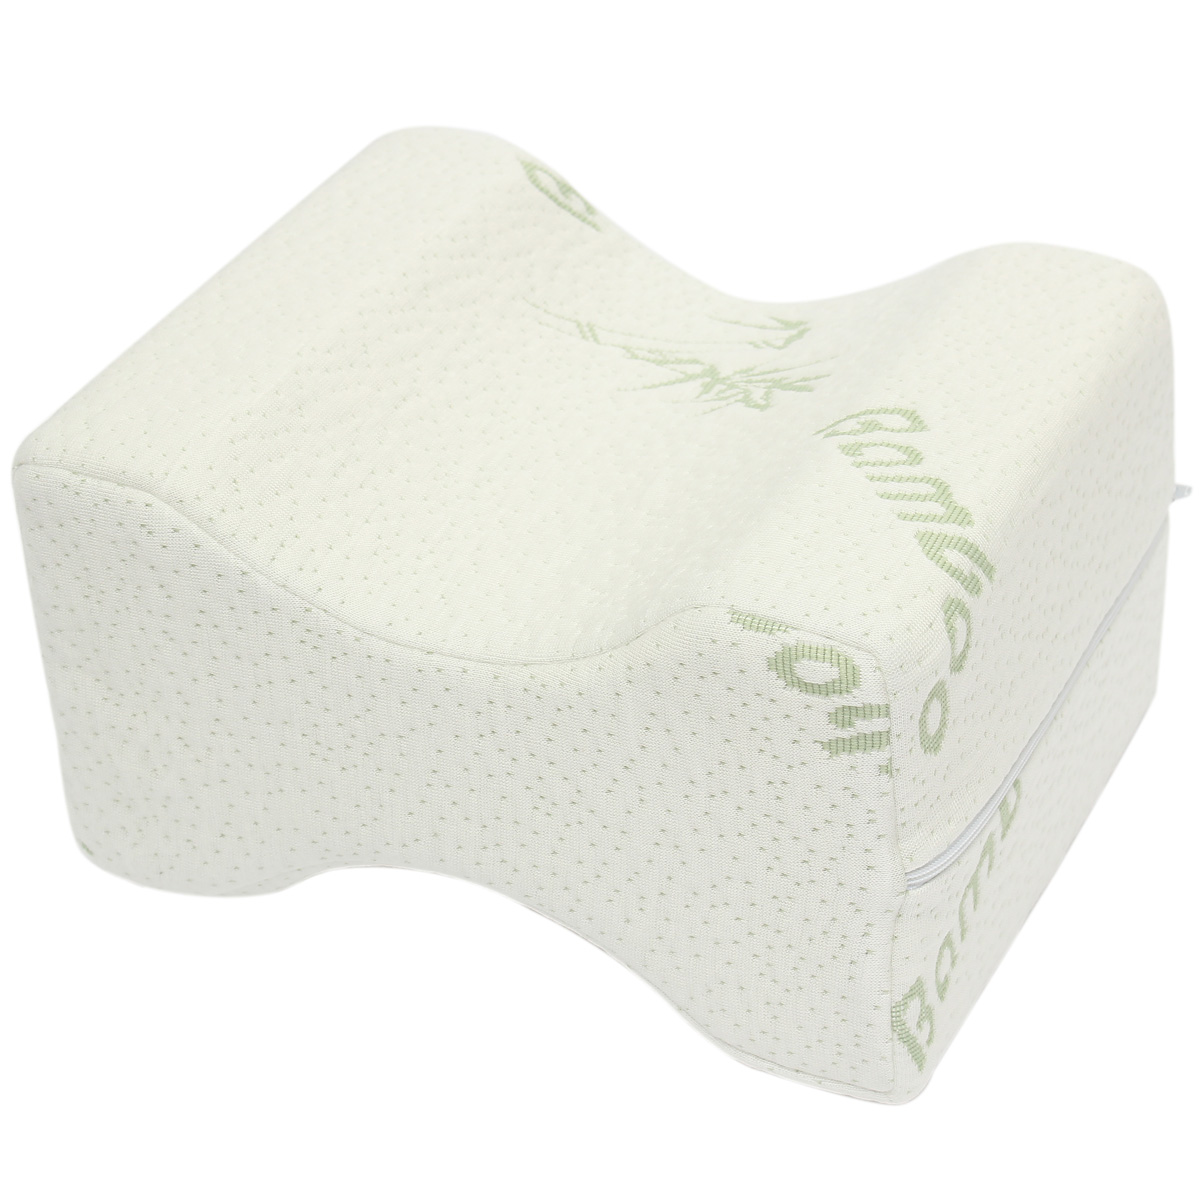 Washable Cover Memory Foam Knee Hip Leg Pillow Bed Cushion Wedge Relief Support